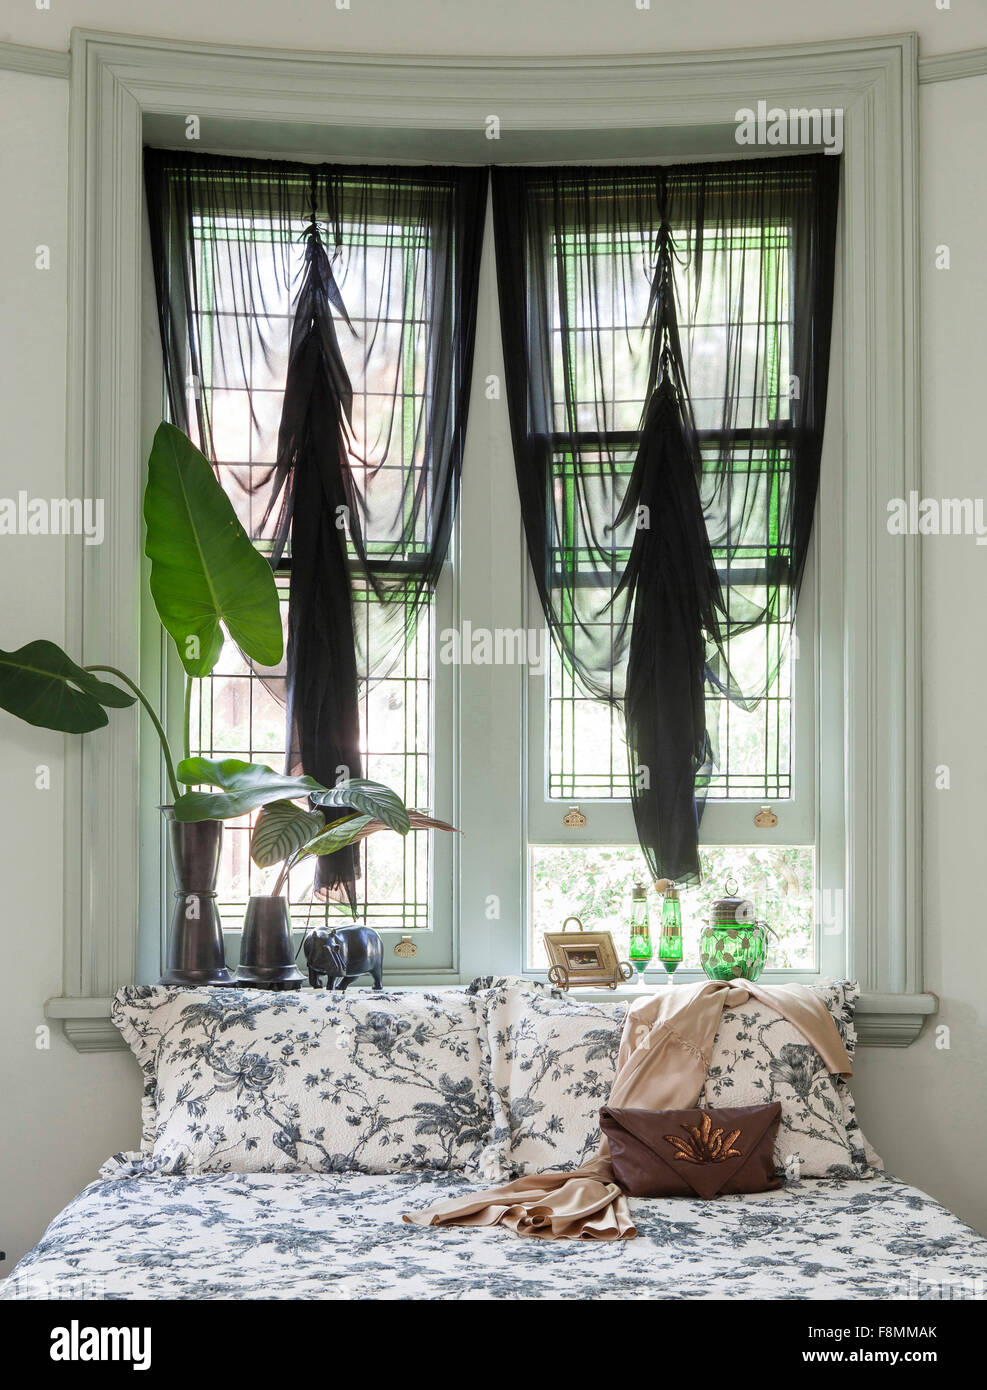 The Home Of Designer Erica Pols. A Bedroom. Windows Drapped With Ruched  Black Net